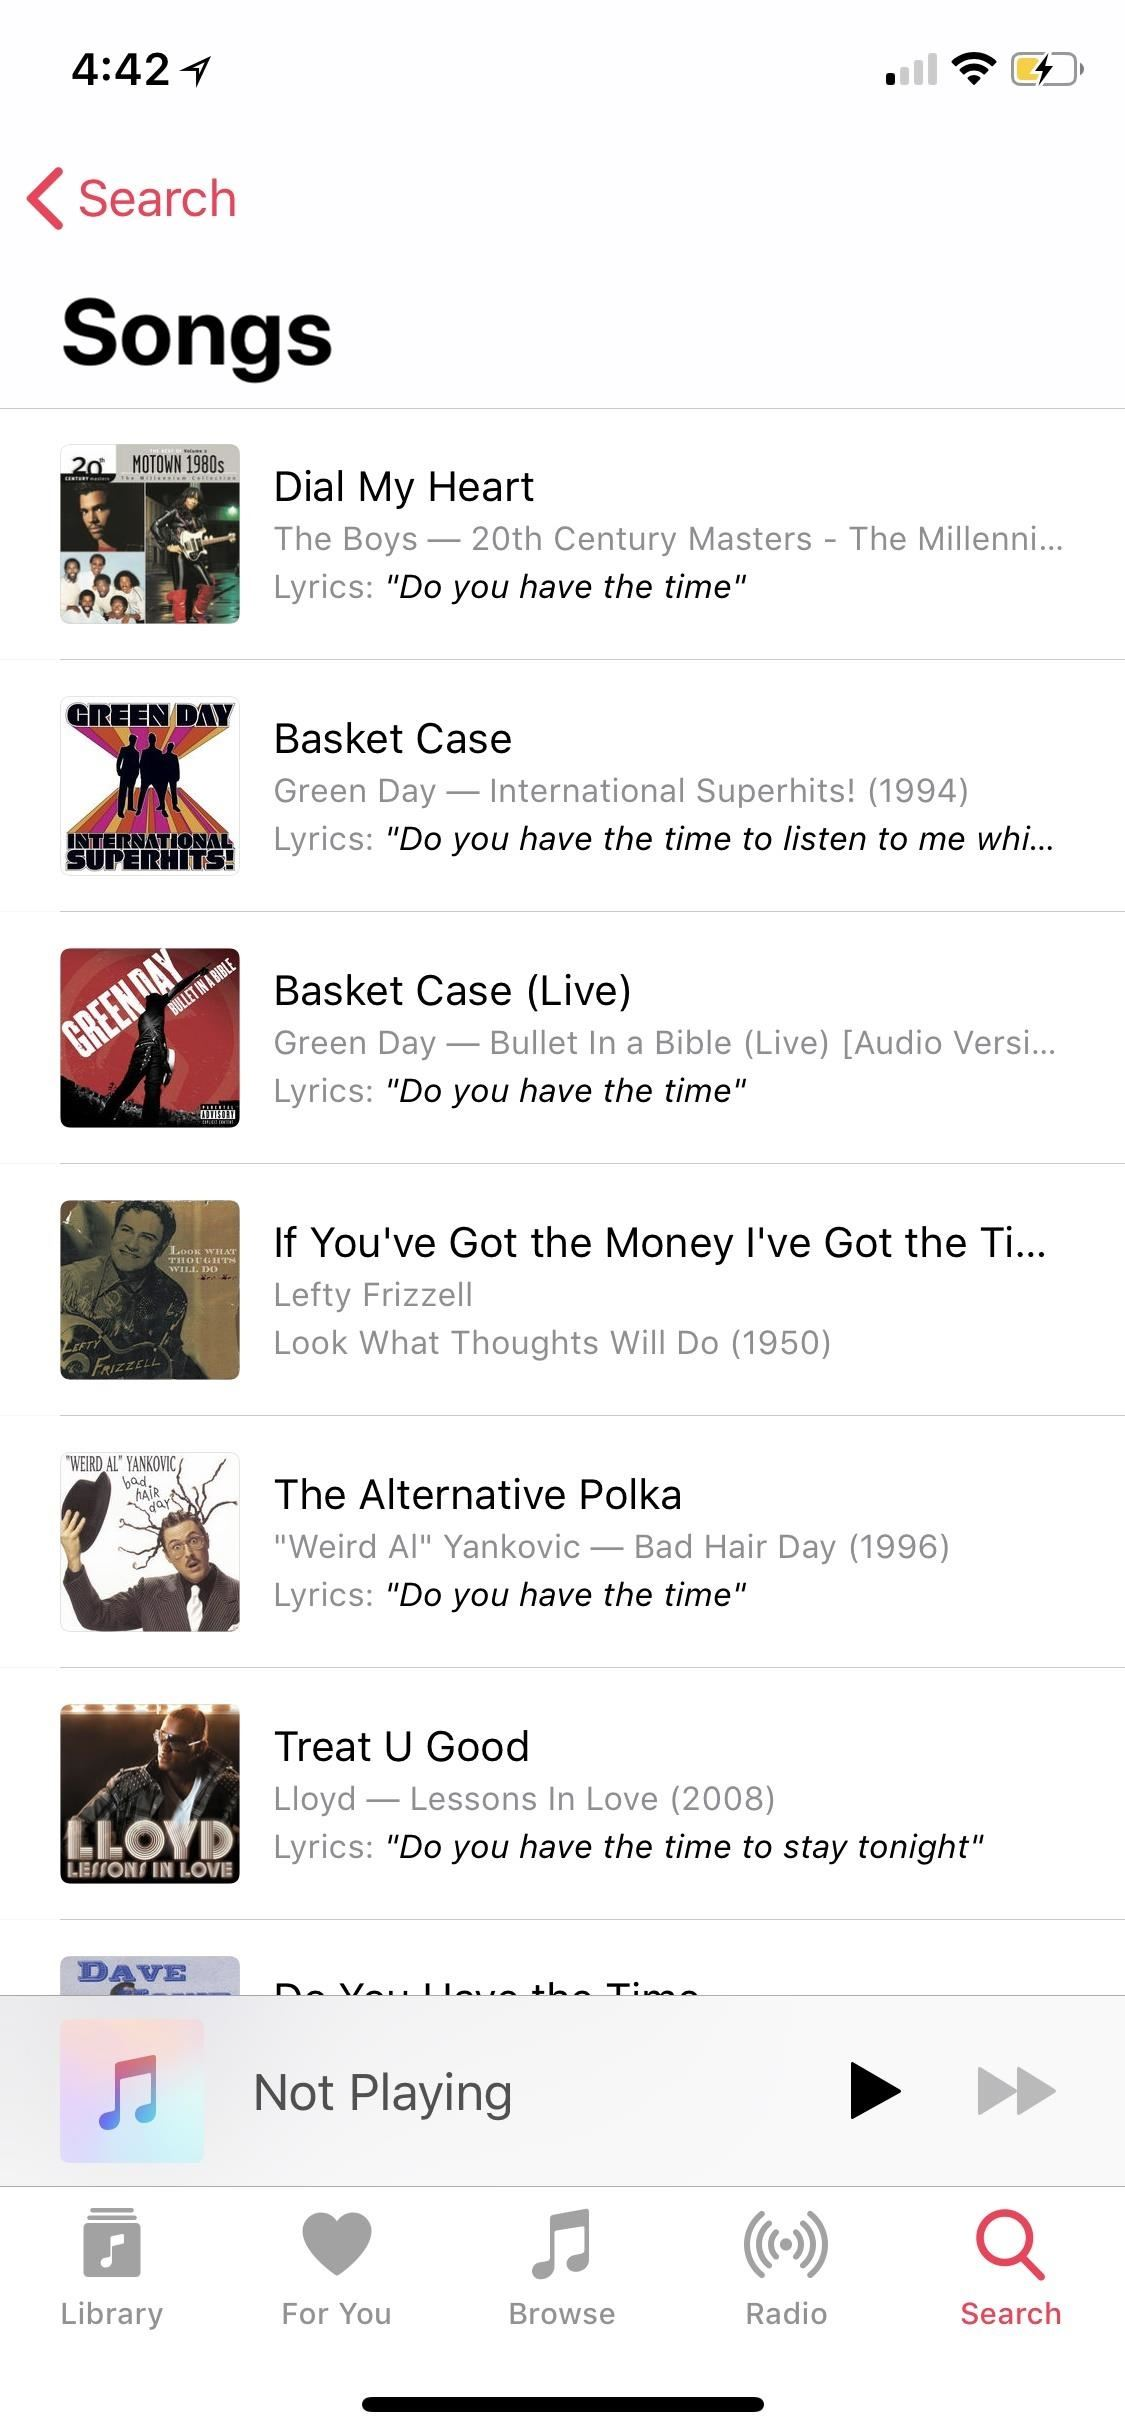 How to Find Songs by Lyrics in Apple Music for iOS 12 — With or Without a Subscription